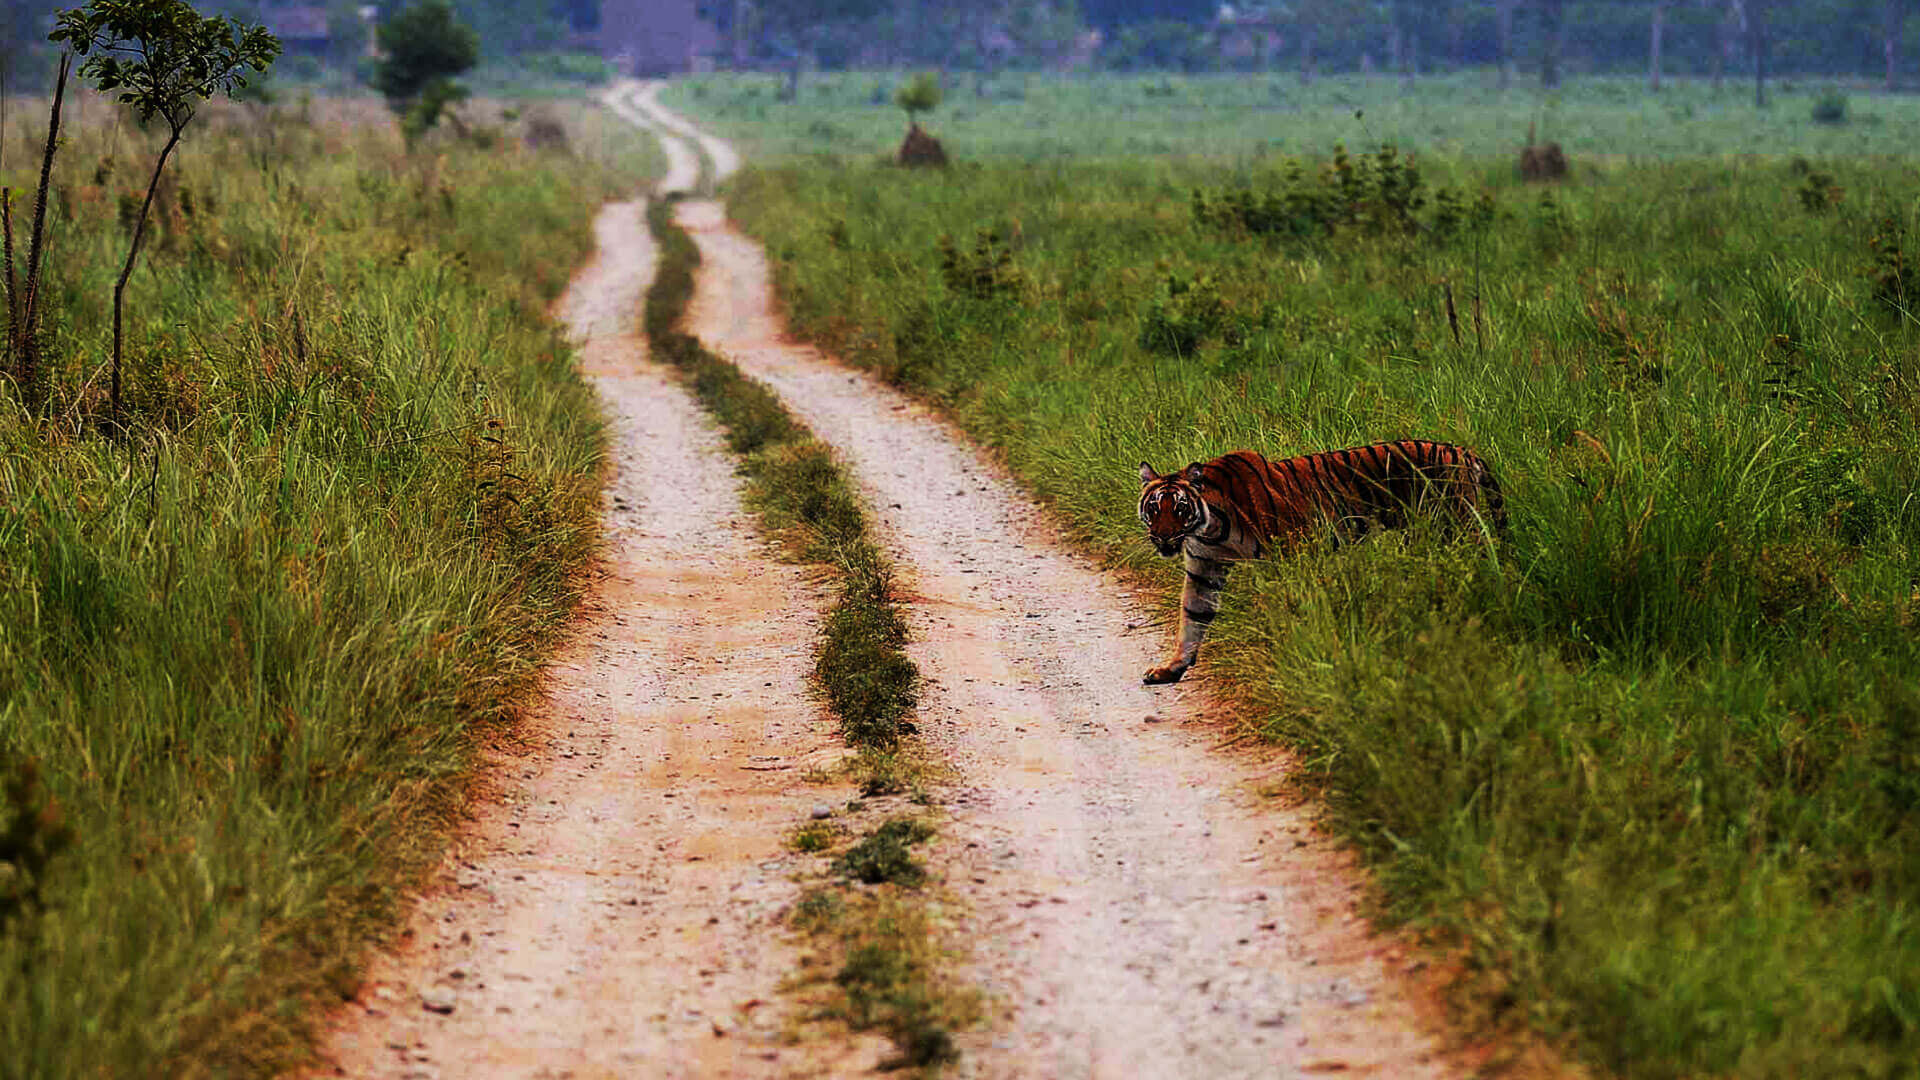 Jim Corbett National Park - A Refreshing Travel Getaway